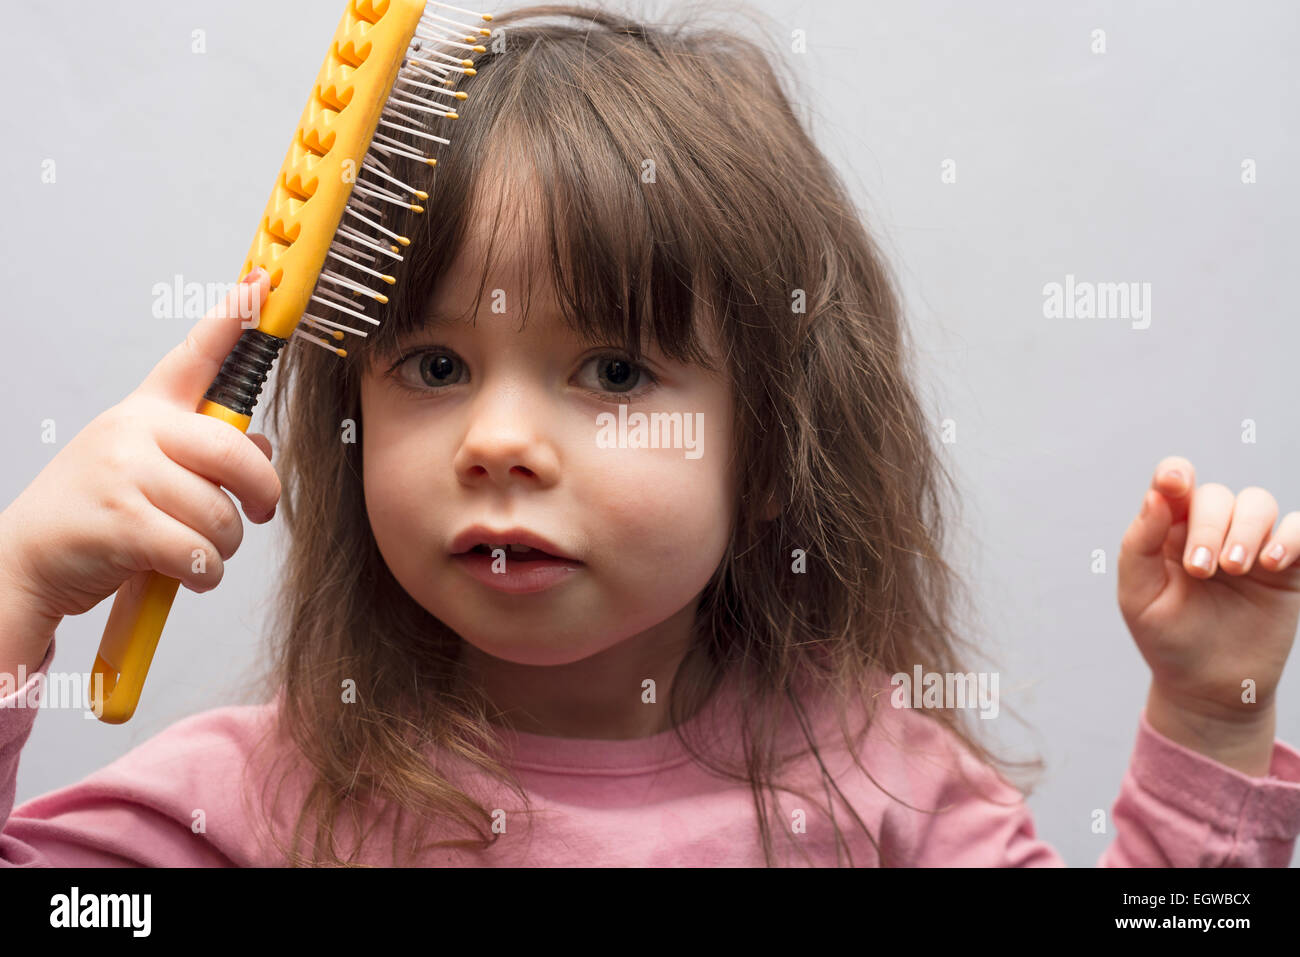 2-year old girl brushing her hair